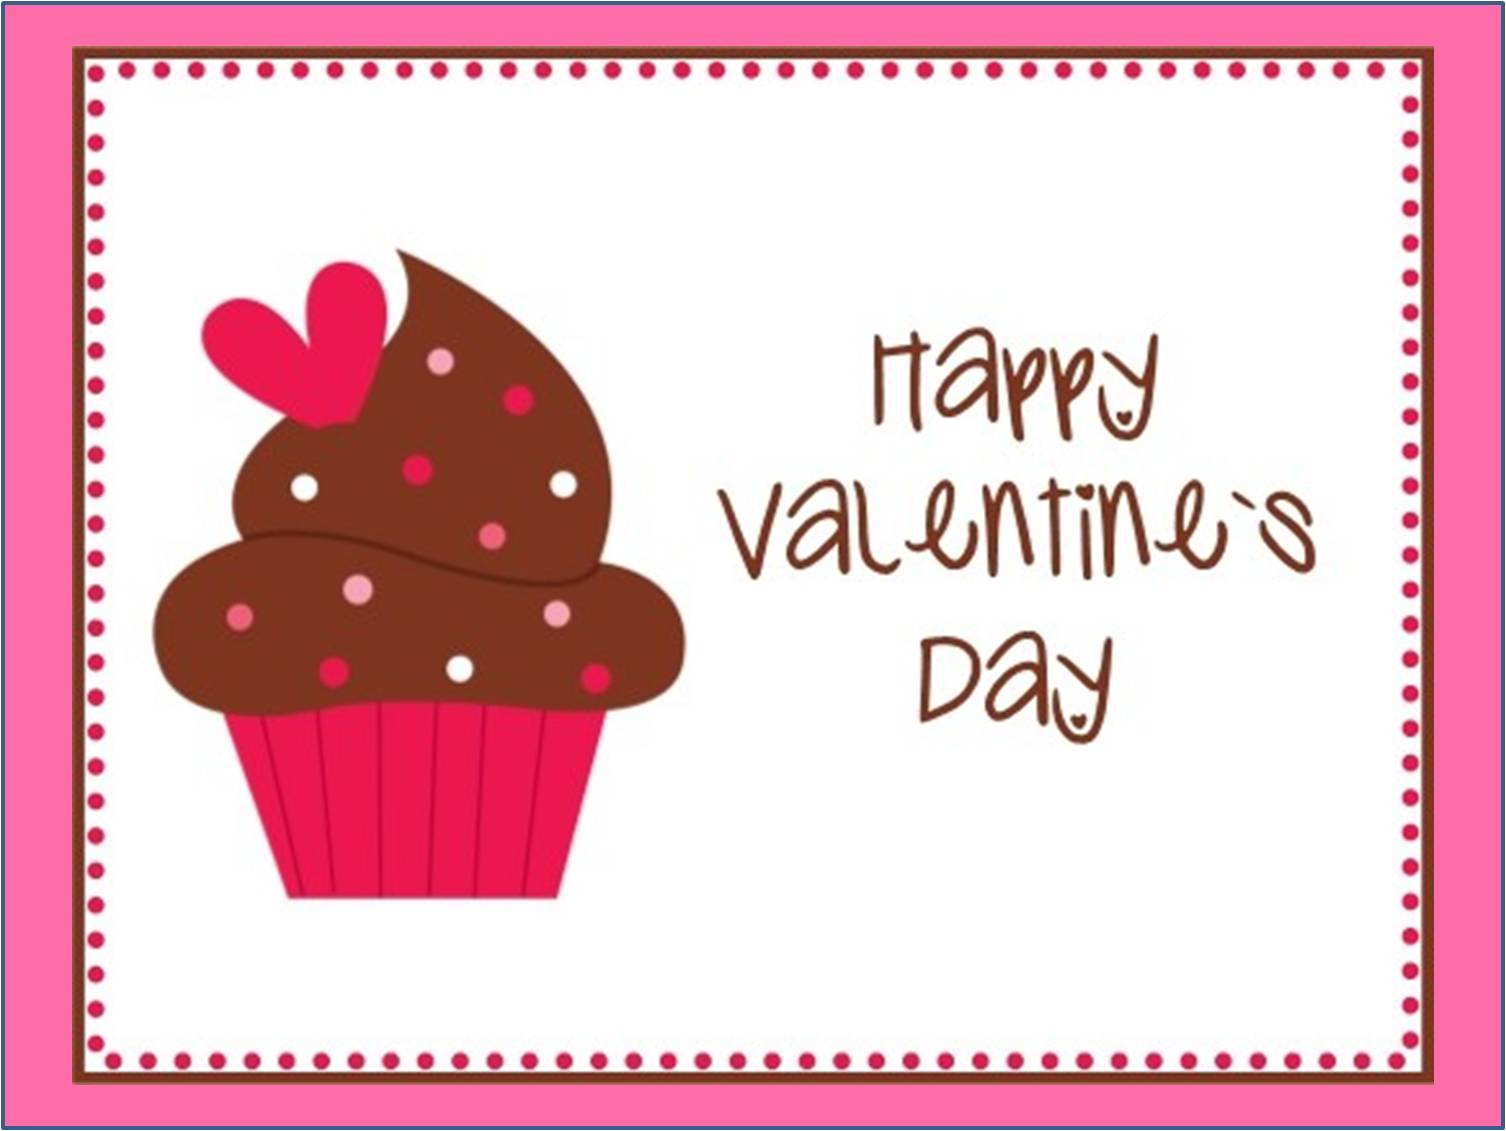 Free Valentines Day Clipart .-Free valentines day clipart .-3